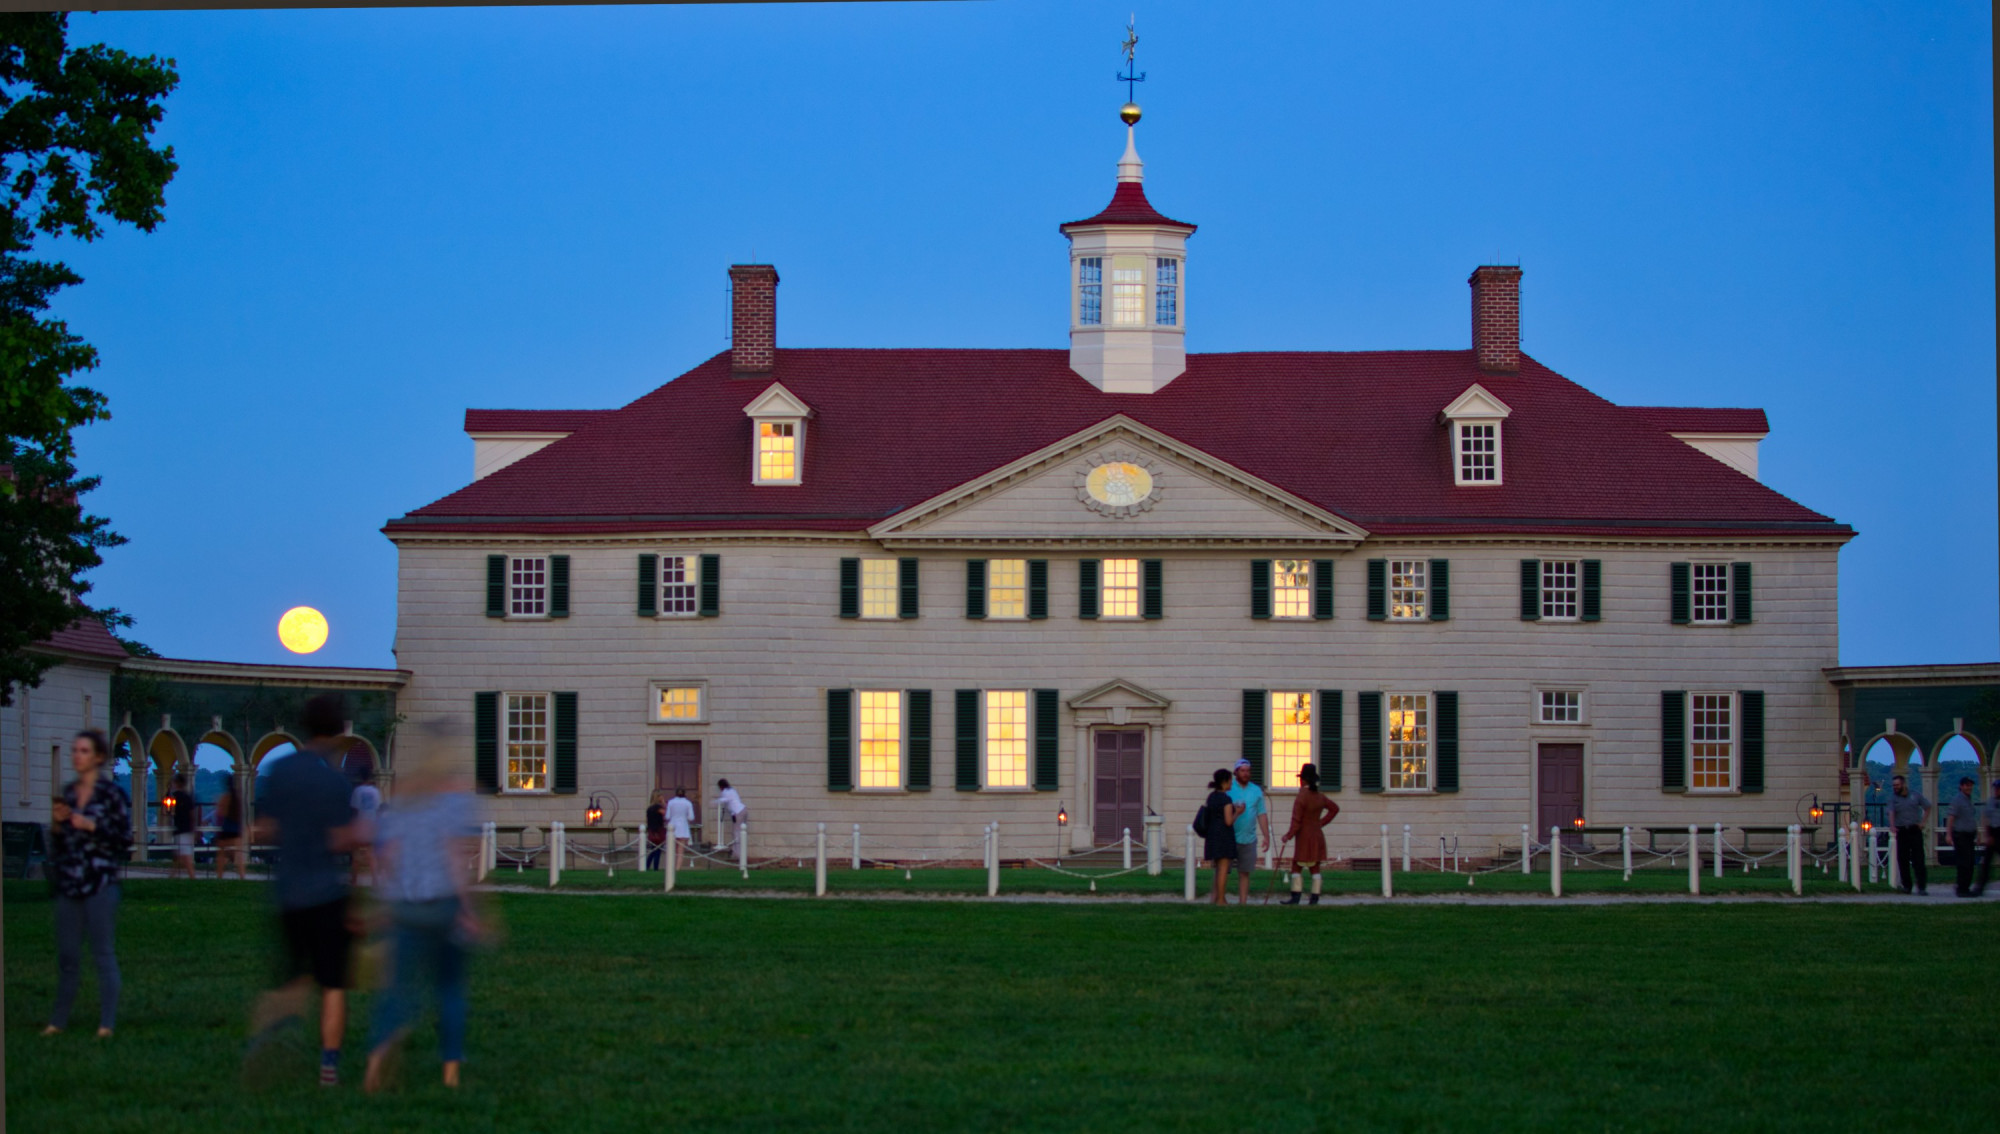 Ten Facts About the Mansion · George Washington's Mount Vernon